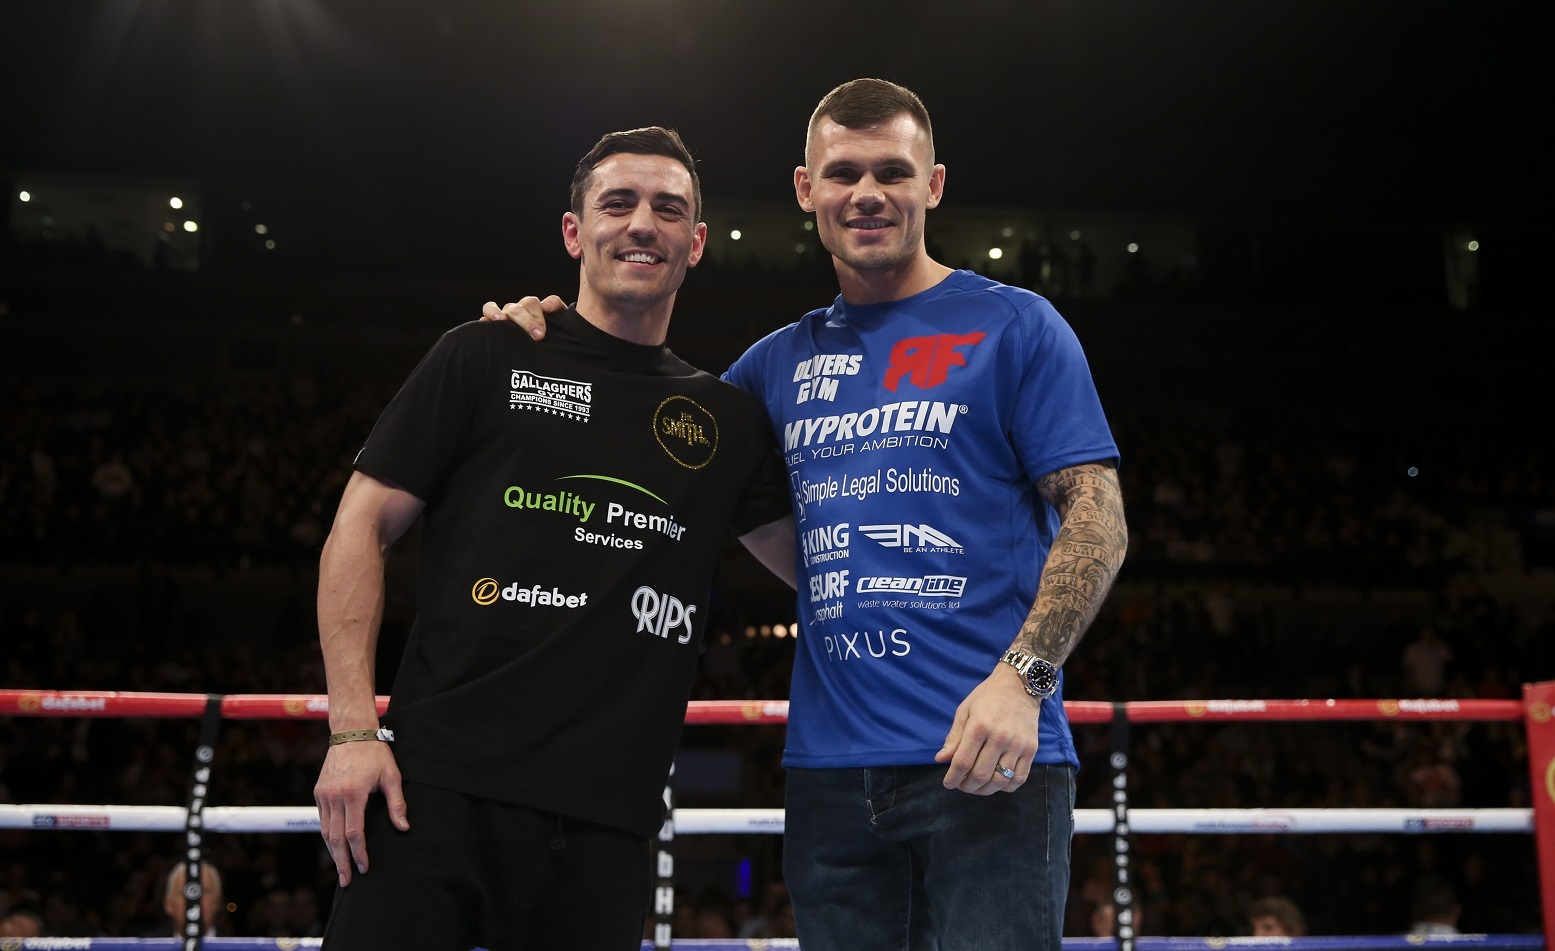 Anthony Crolla and Martin Murray supporting each other's title ambitions. Picture: Lawrence Lustig